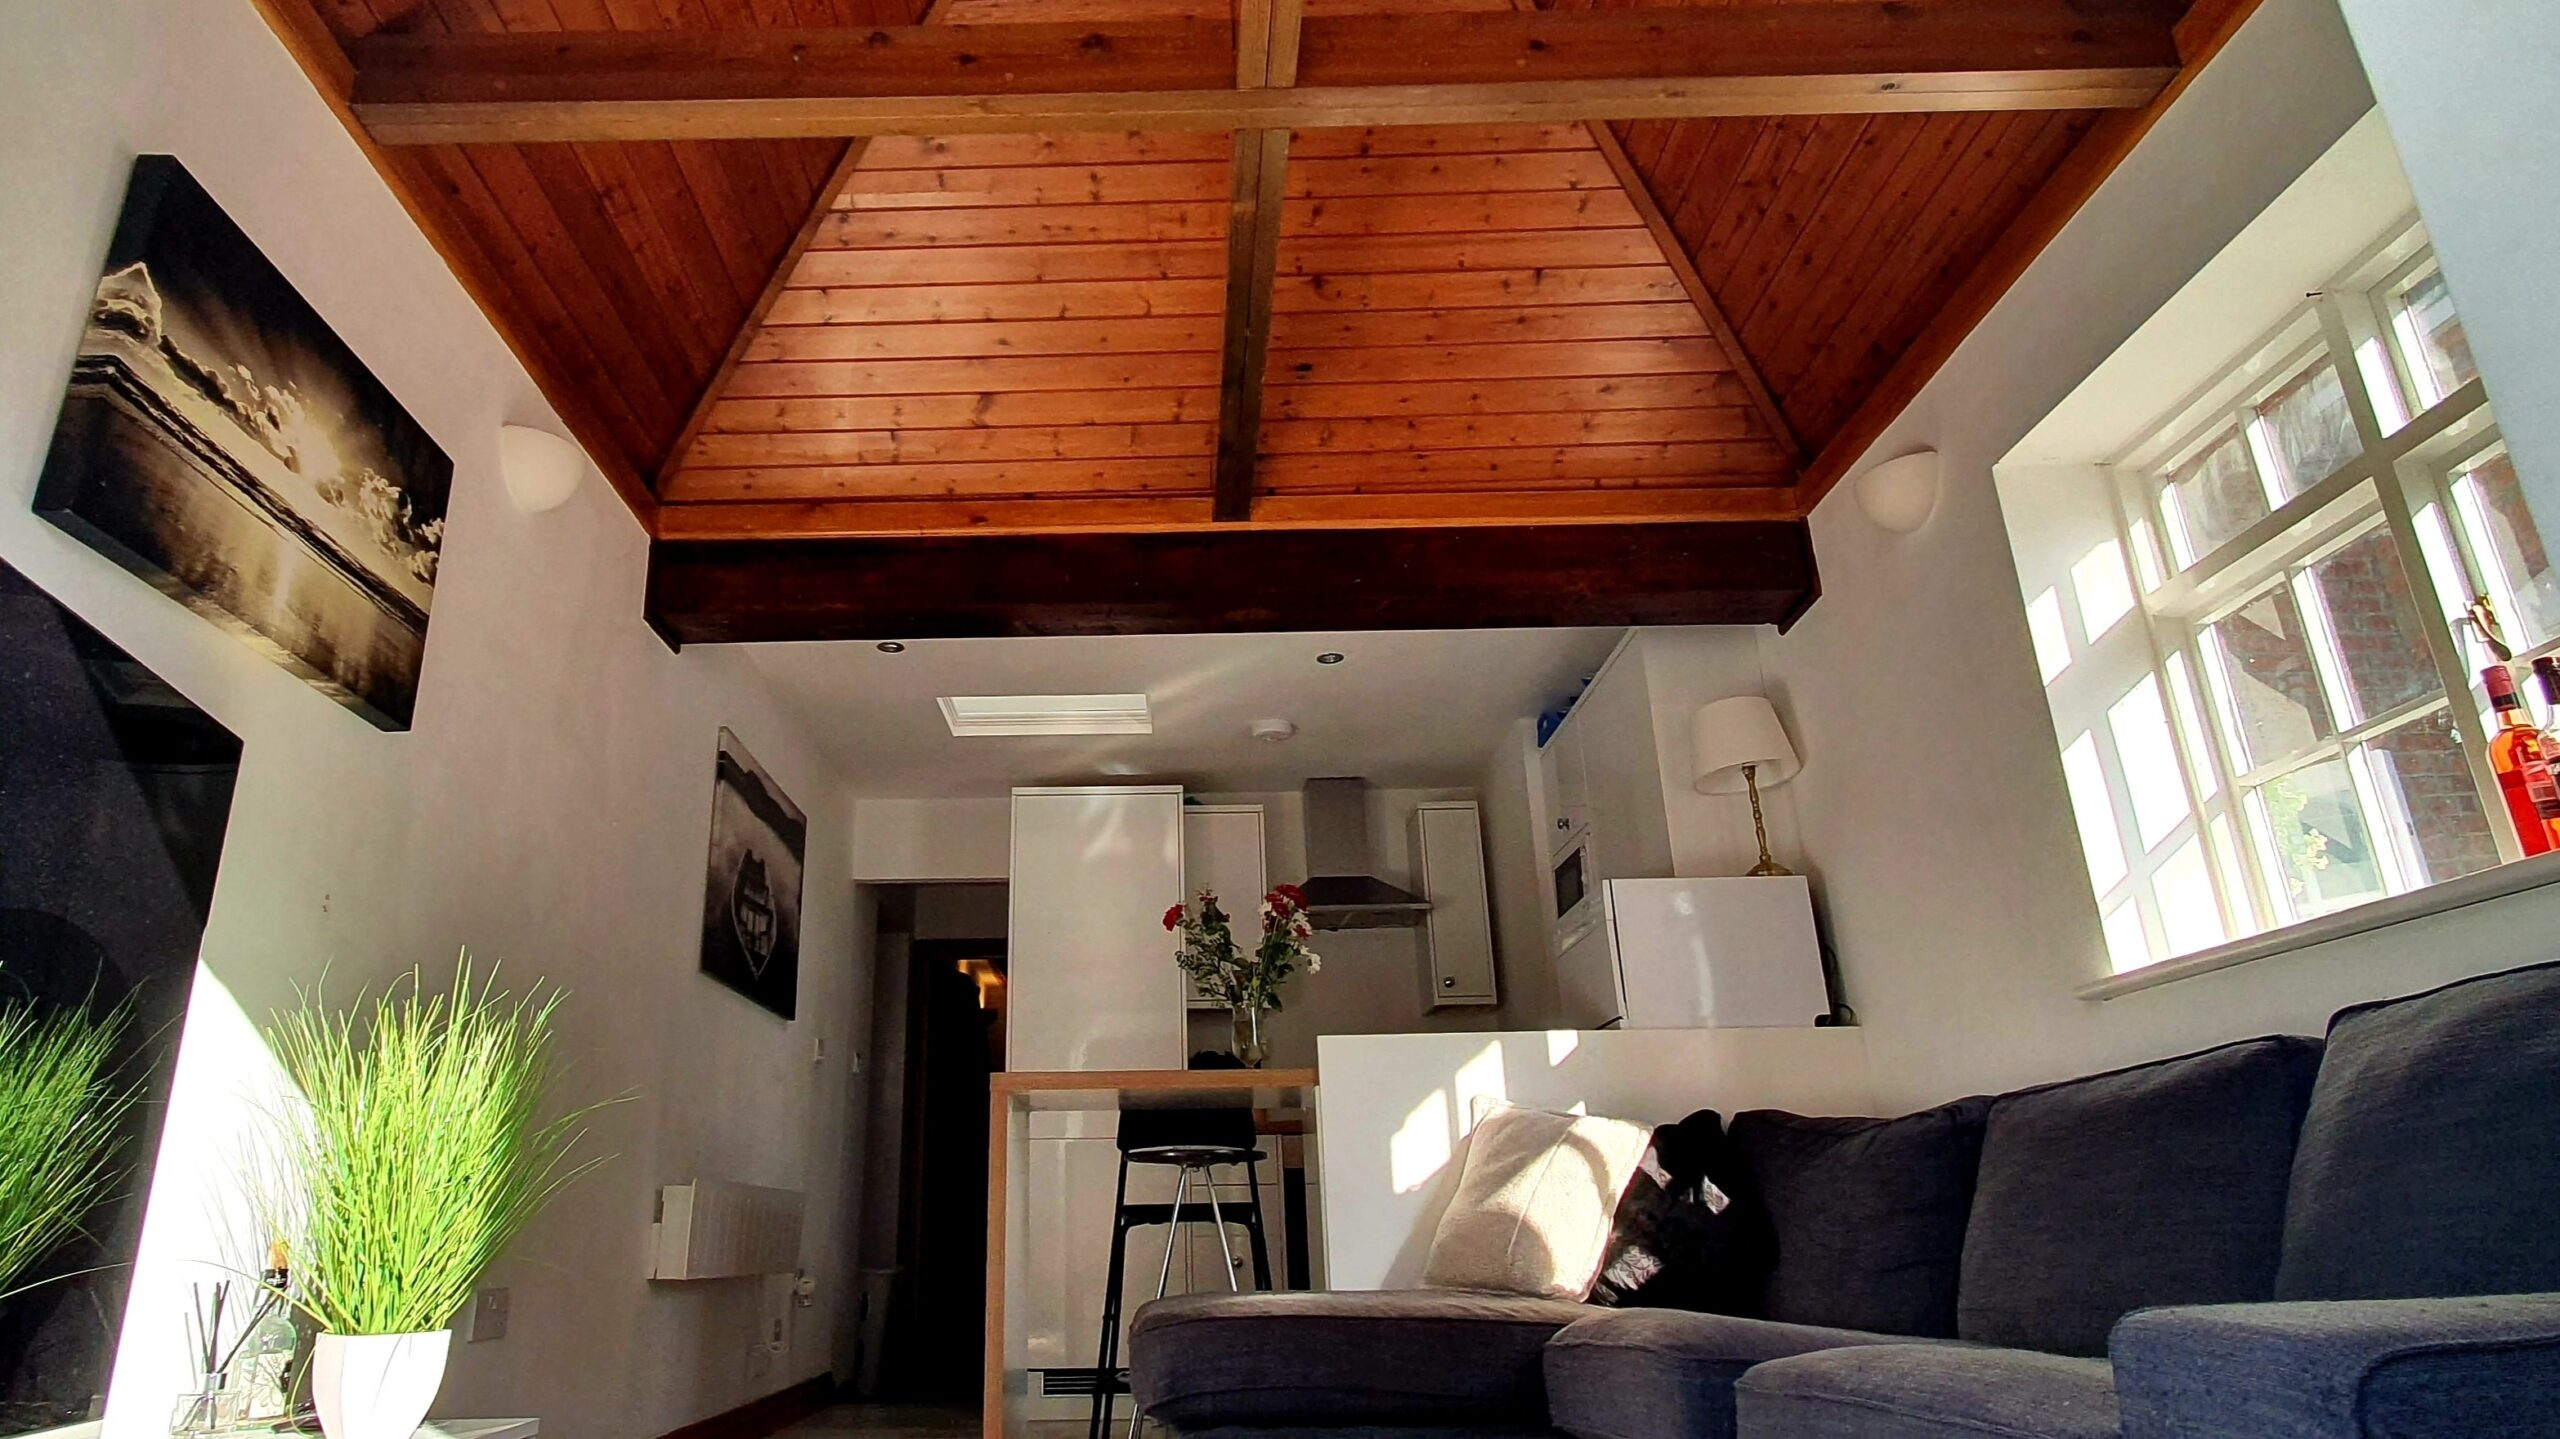 Top Drawer Construction open plan kitchen living room garage conversion with raised roof and timber cladding in Ottershaw Surrey